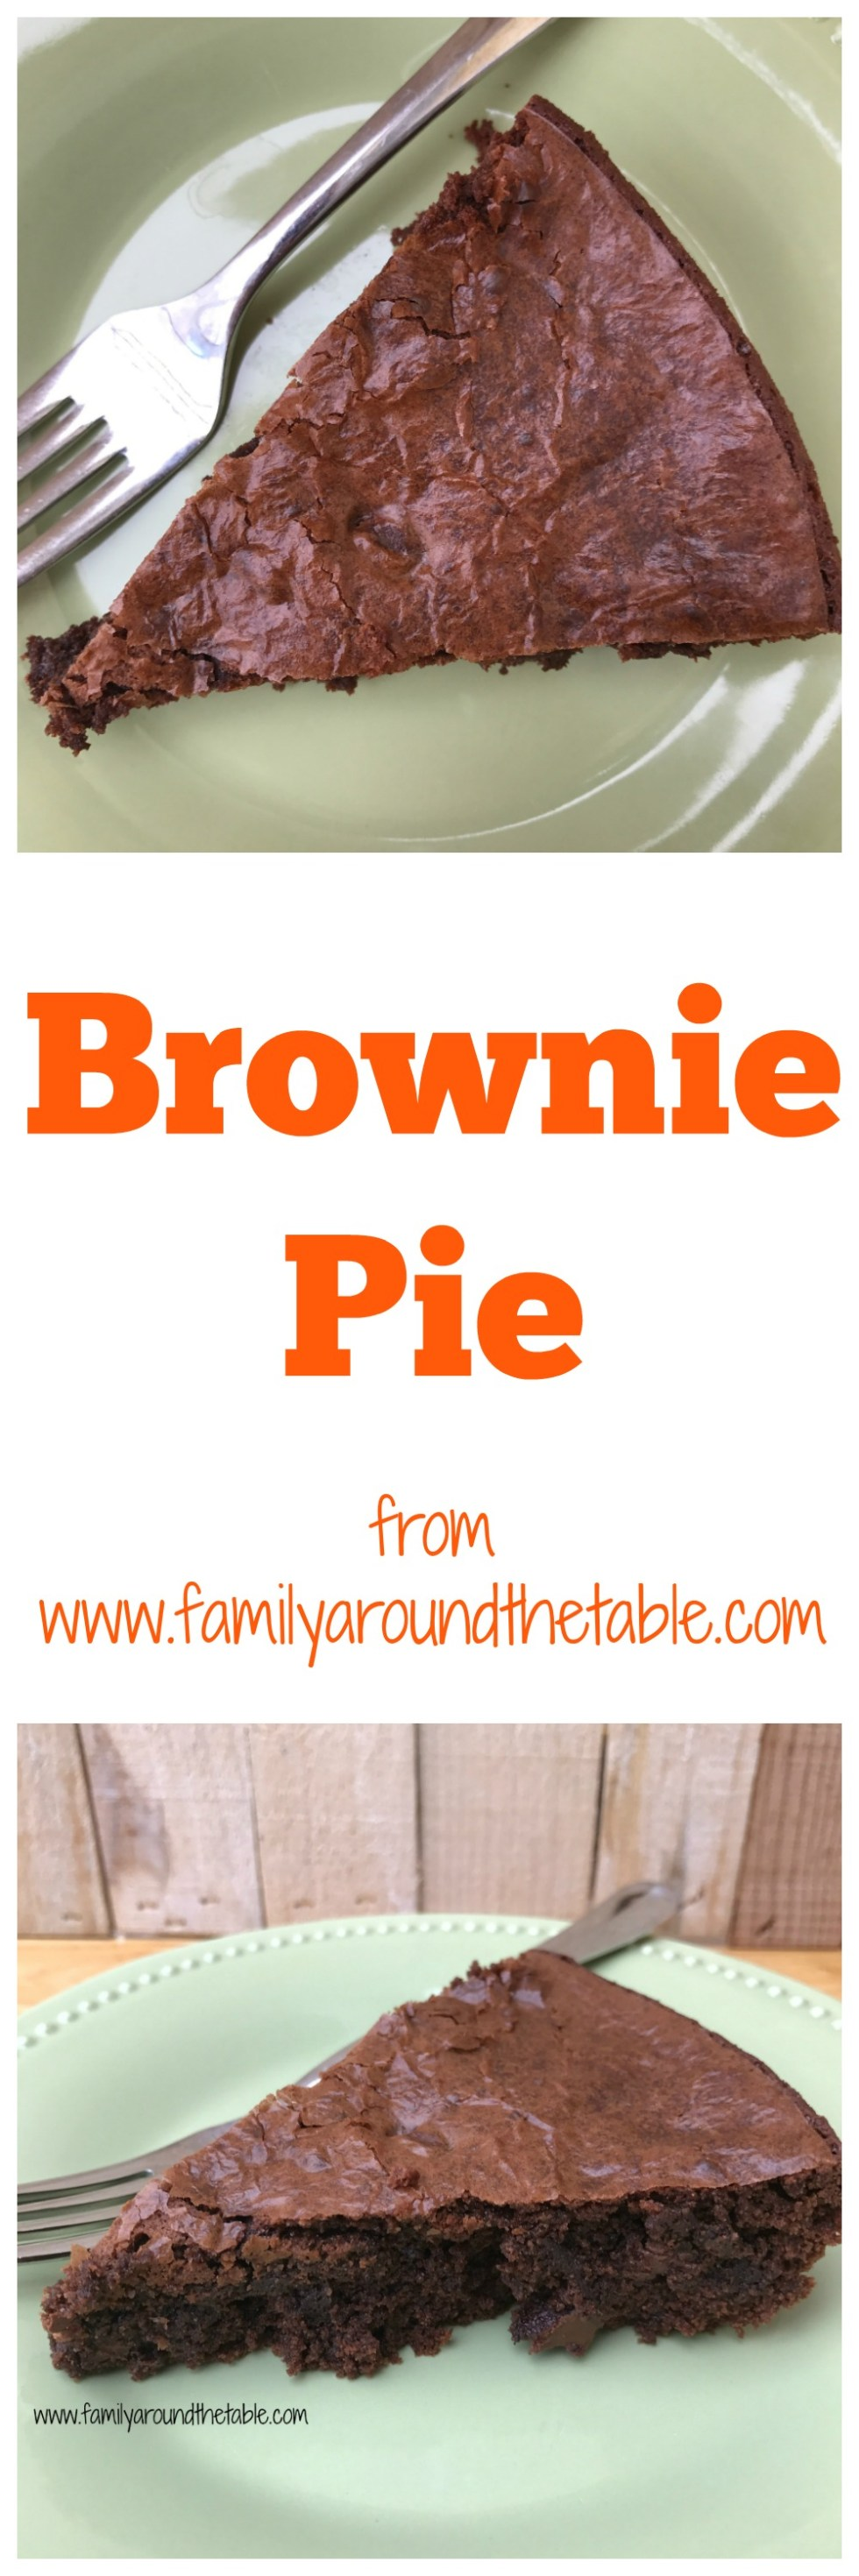 Brownie pie travels easy meaning it's perfect for potlucks.